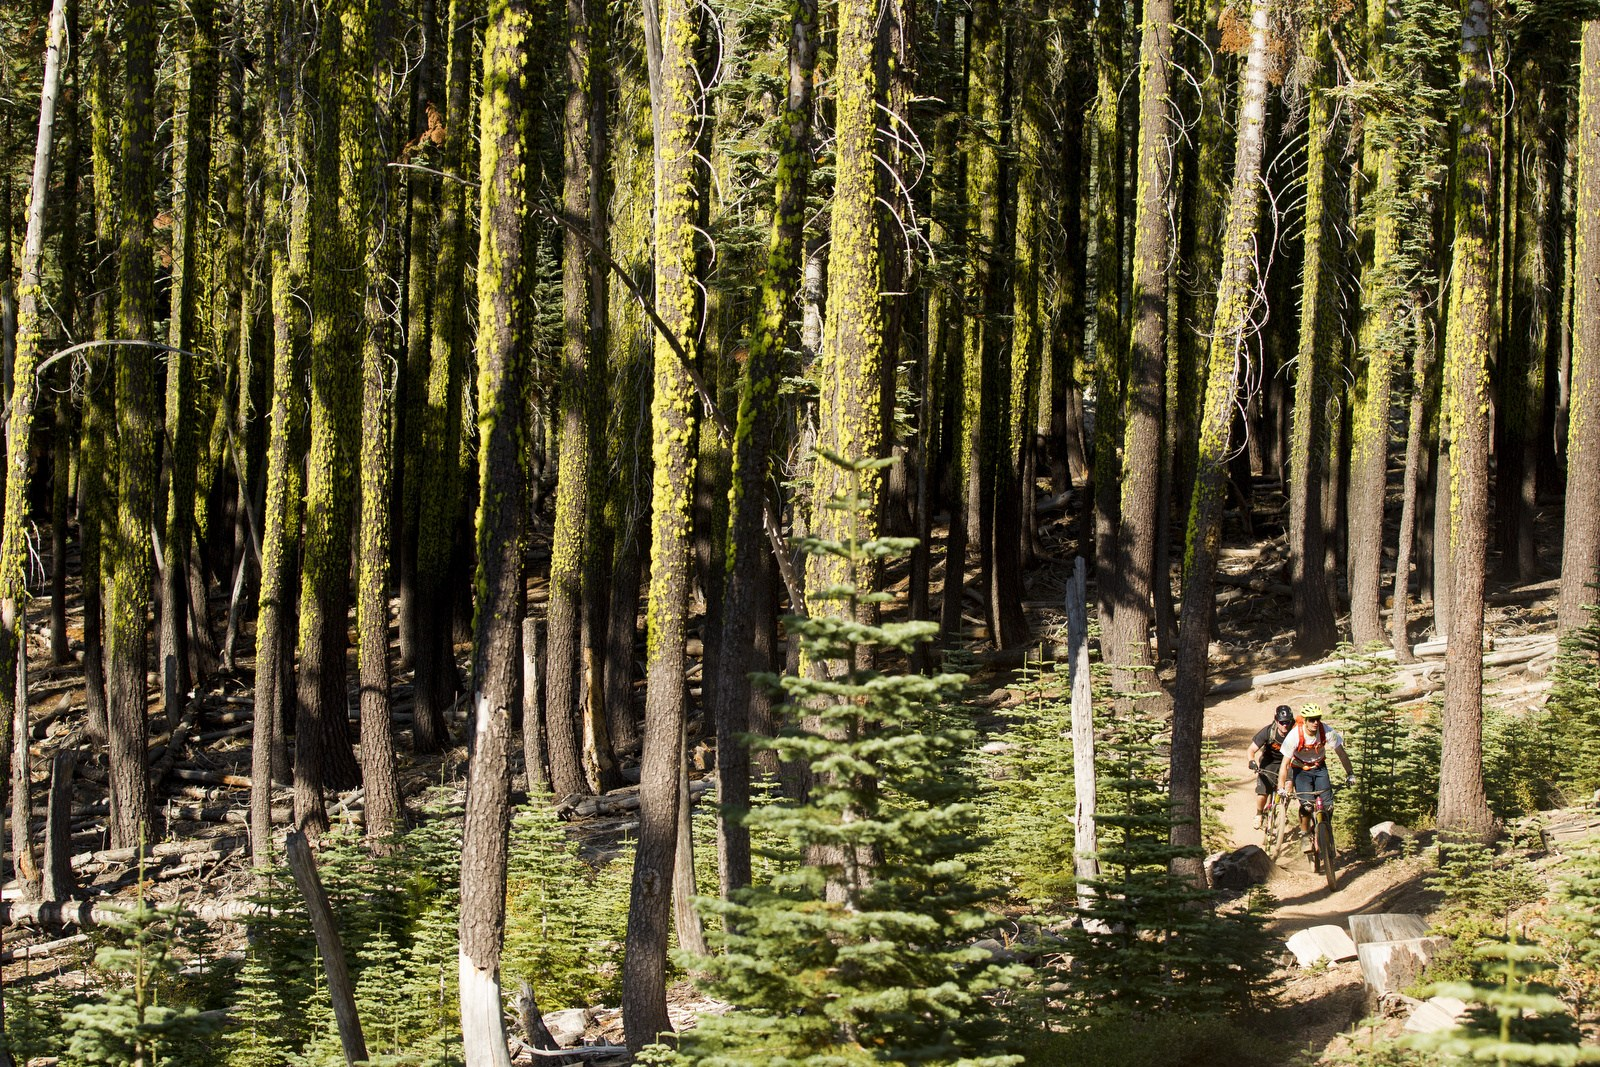 No one could stop to shoot the rowdy, hyper-speed sections of Butcher trail. Too. Much. Fun.